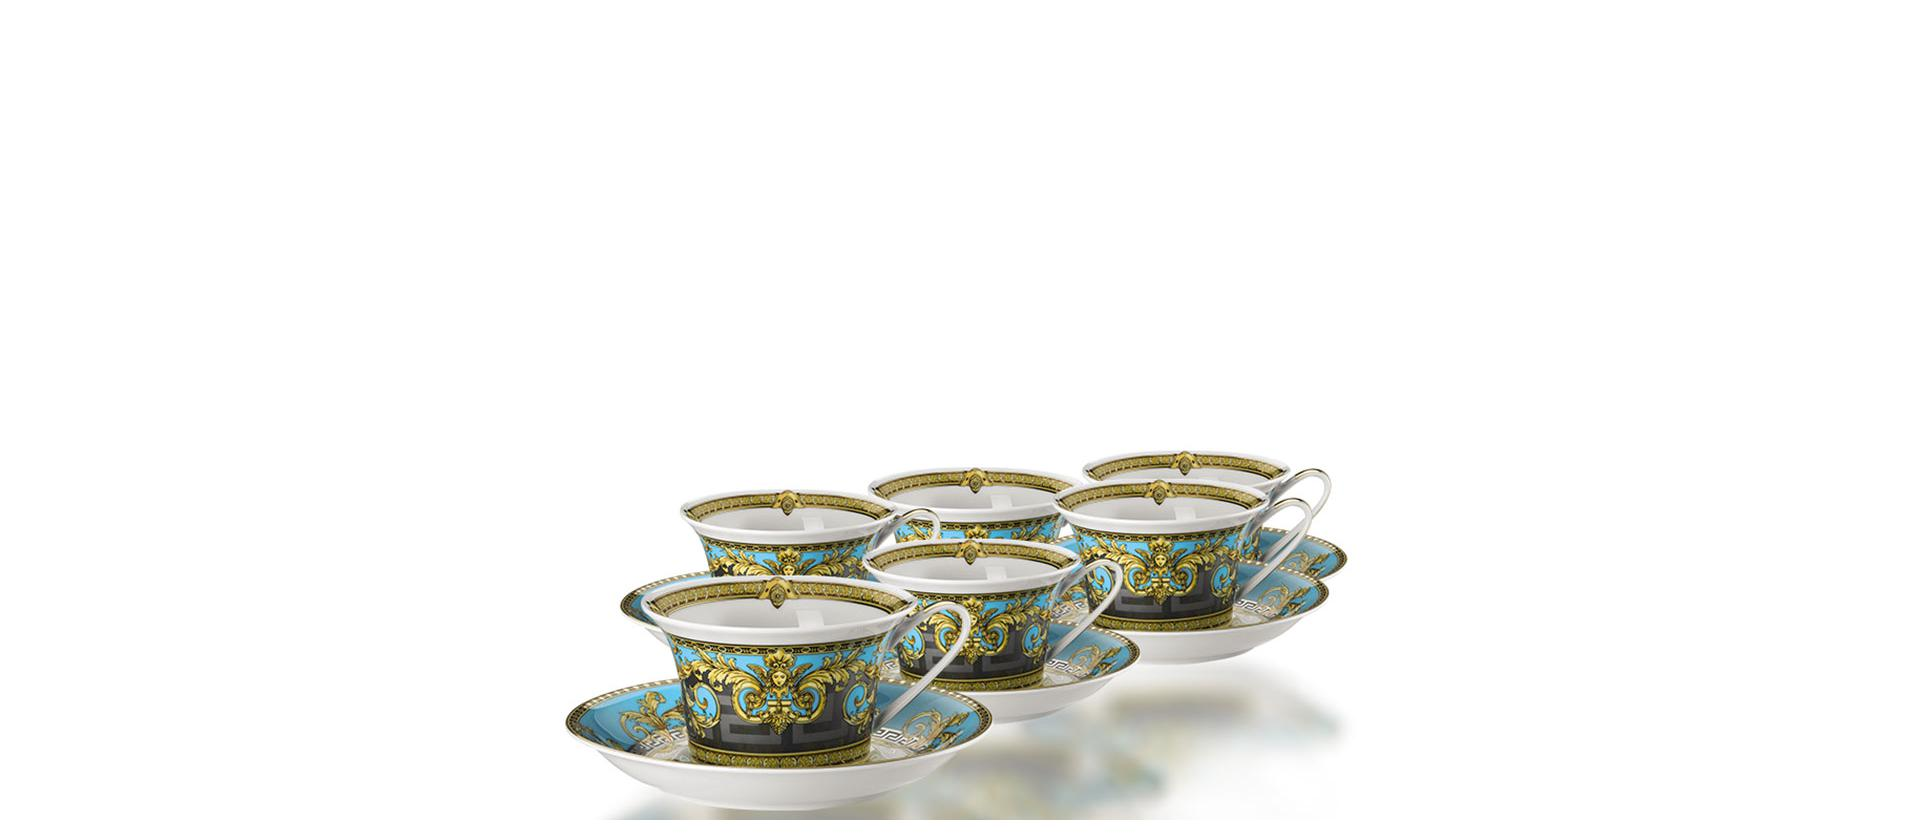 Tea service for 6 people Rosenthal Versace Prestige Gala Bleu big